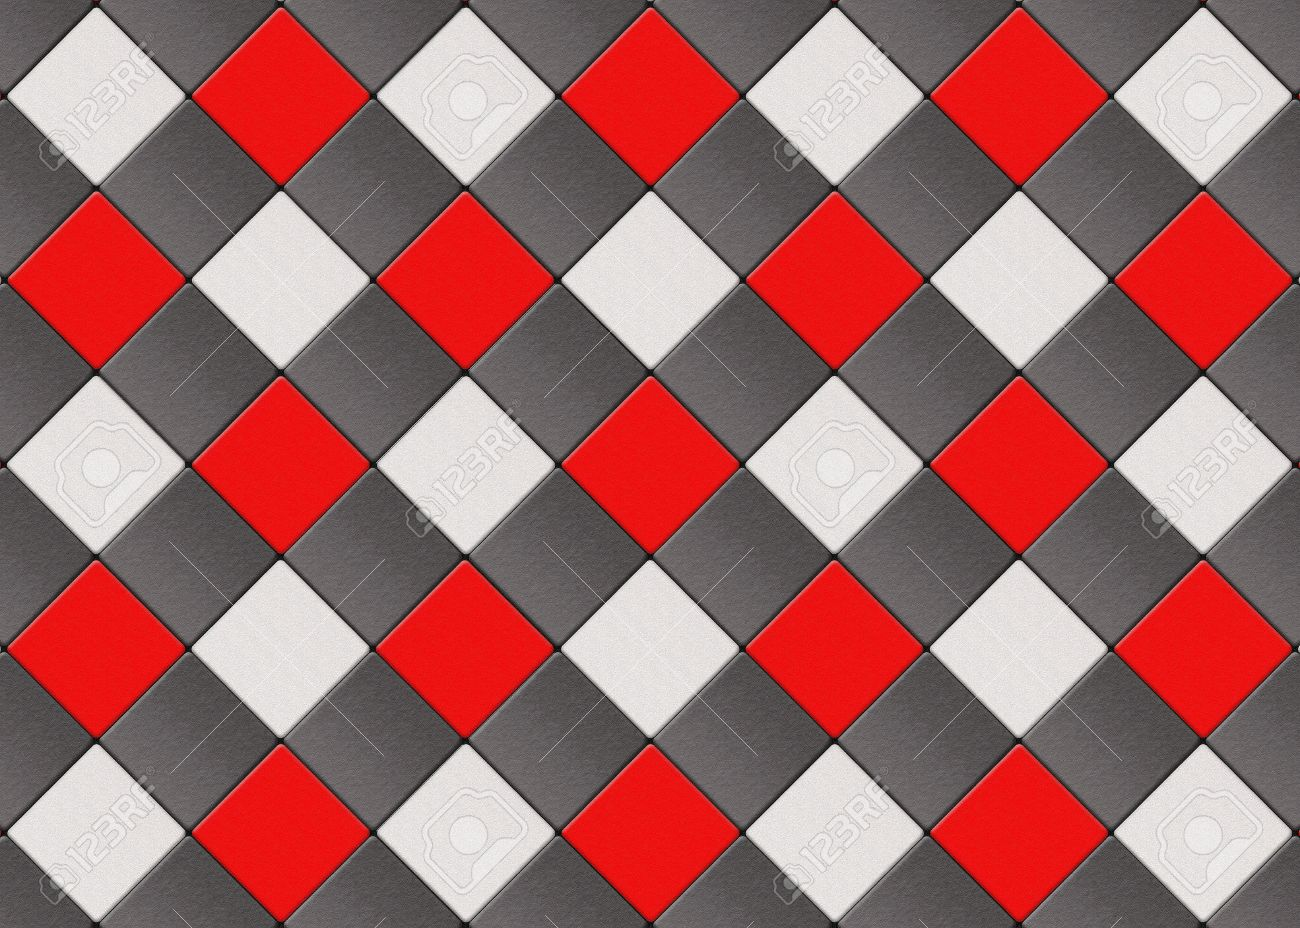 Black red and white checkered floor tiles stock photo picture and black red and white checkered floor tiles stock photo 39771311 dailygadgetfo Image collections